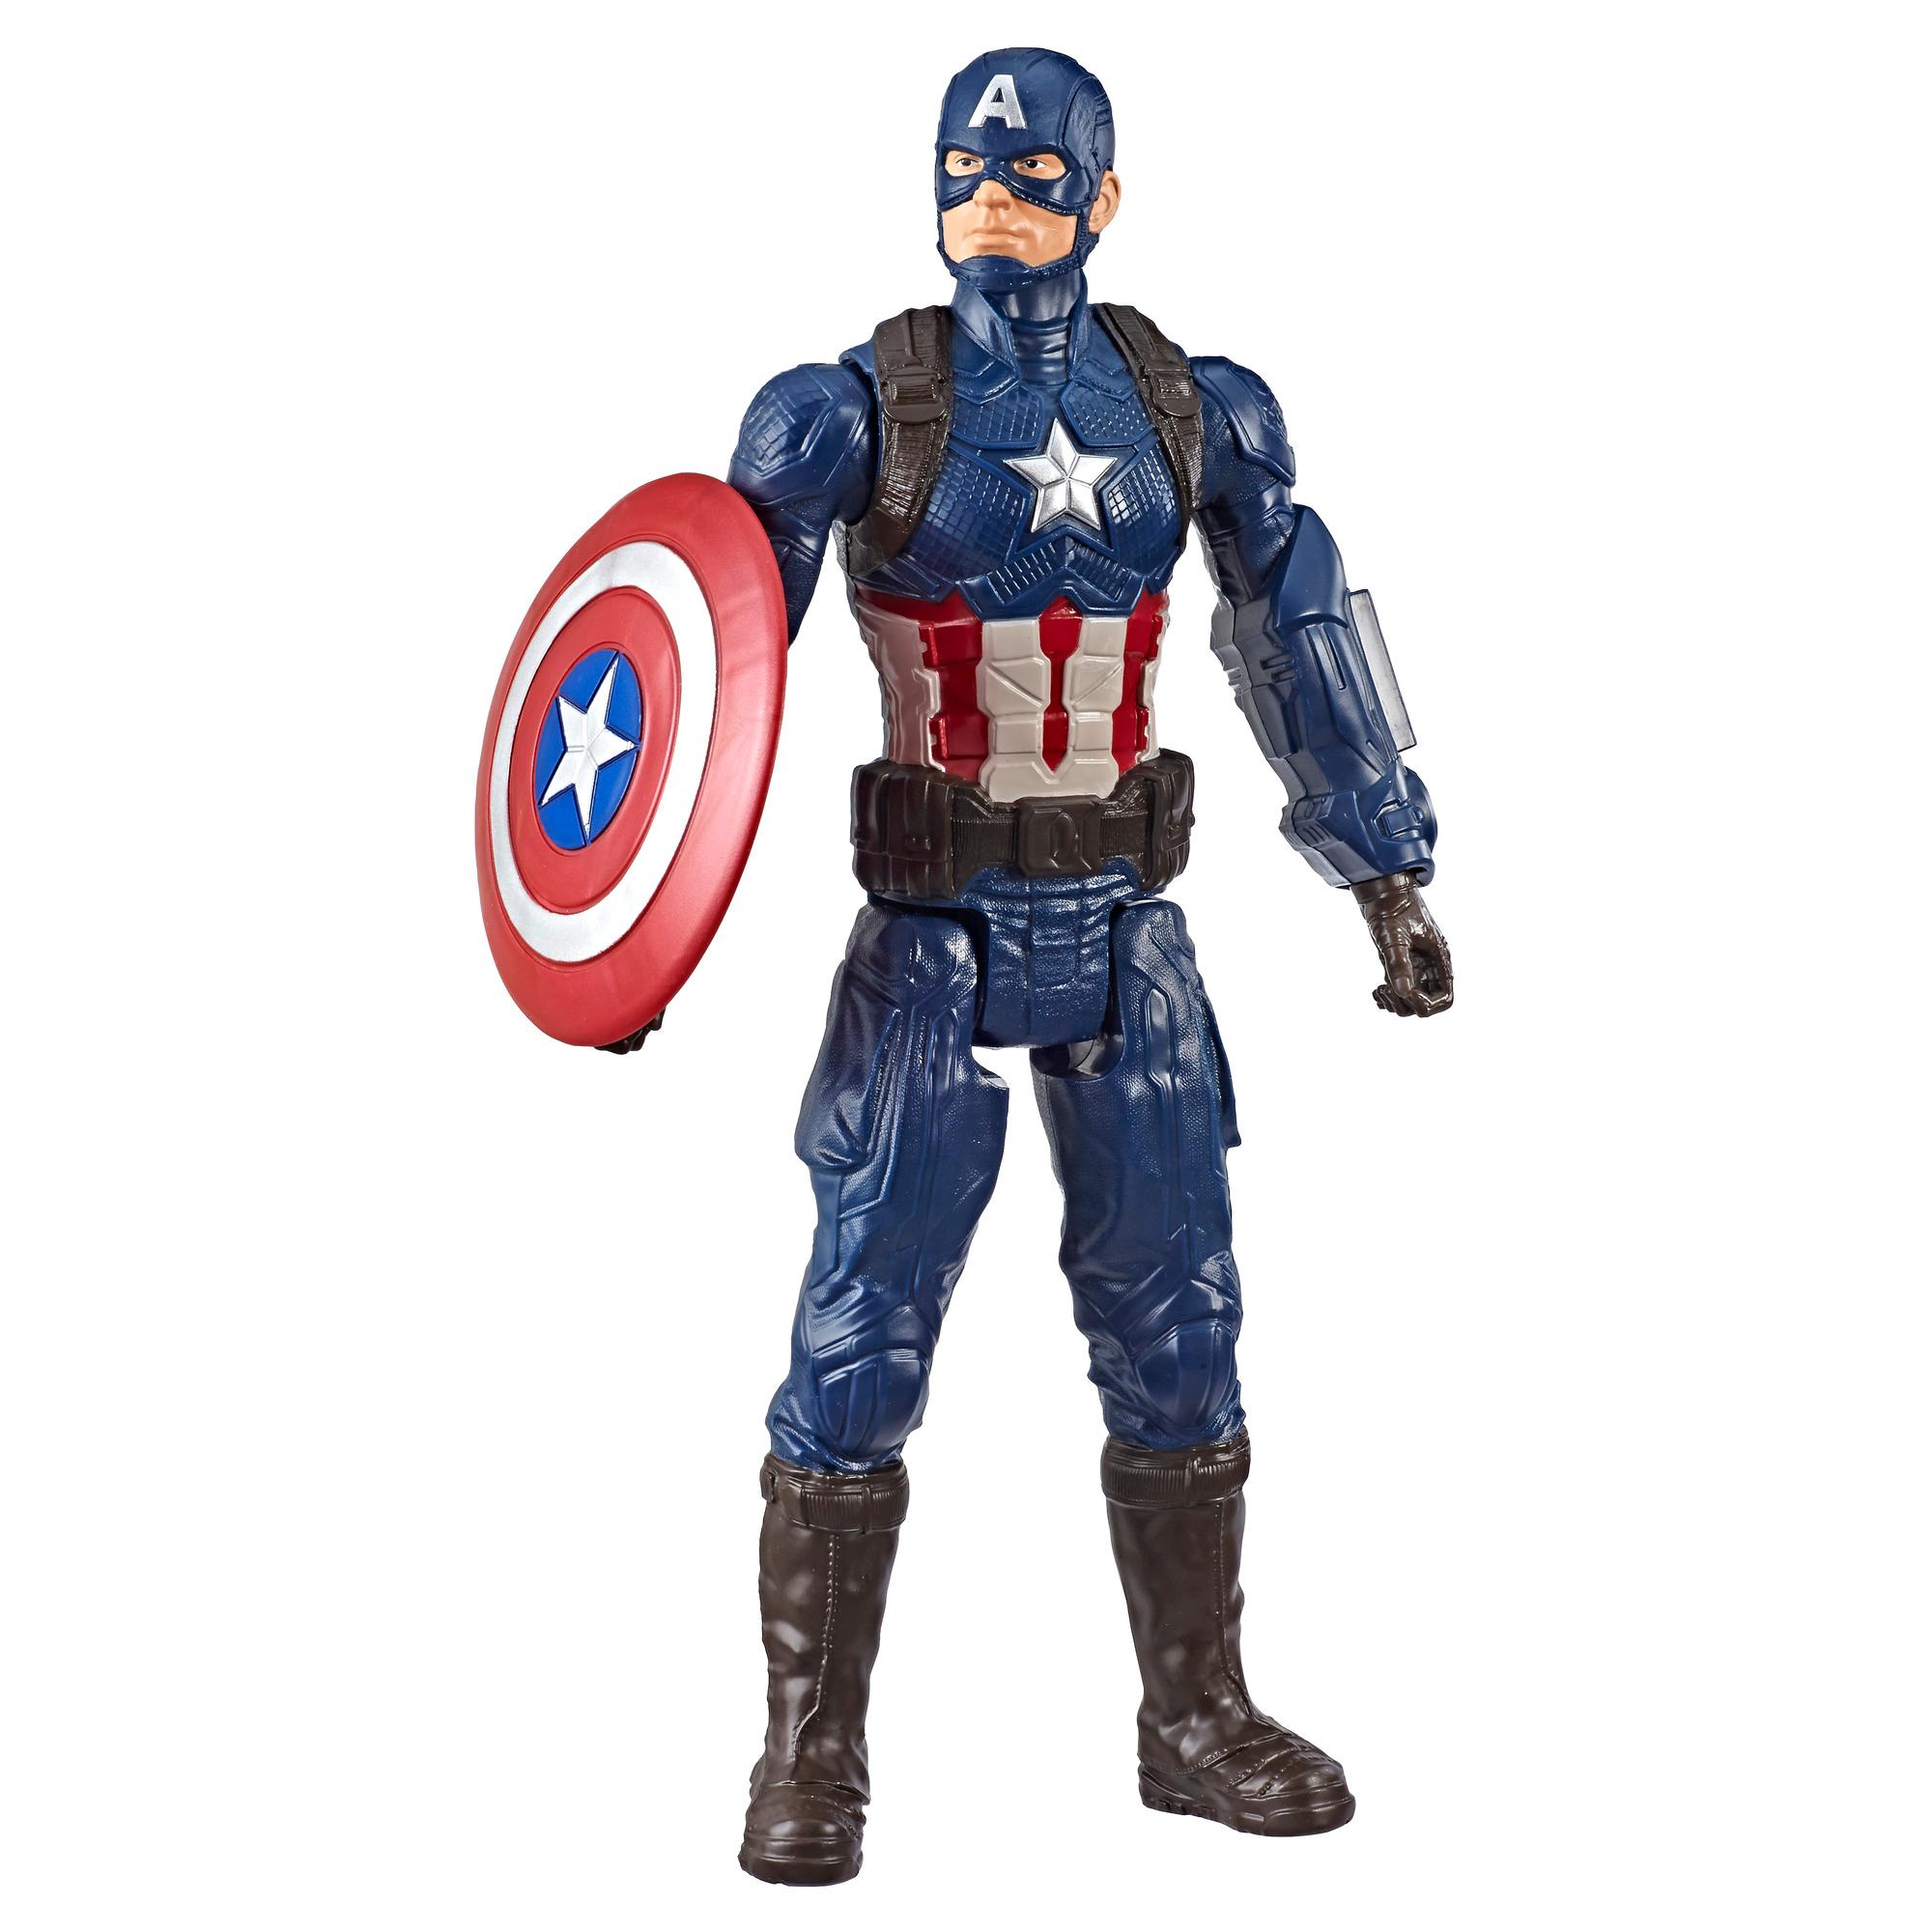 Marvel Avengers : Phase finale Titan Hero Series - Figurine jouet de super-héros Captain America de 30 cm avec port Titan Hero Power FX